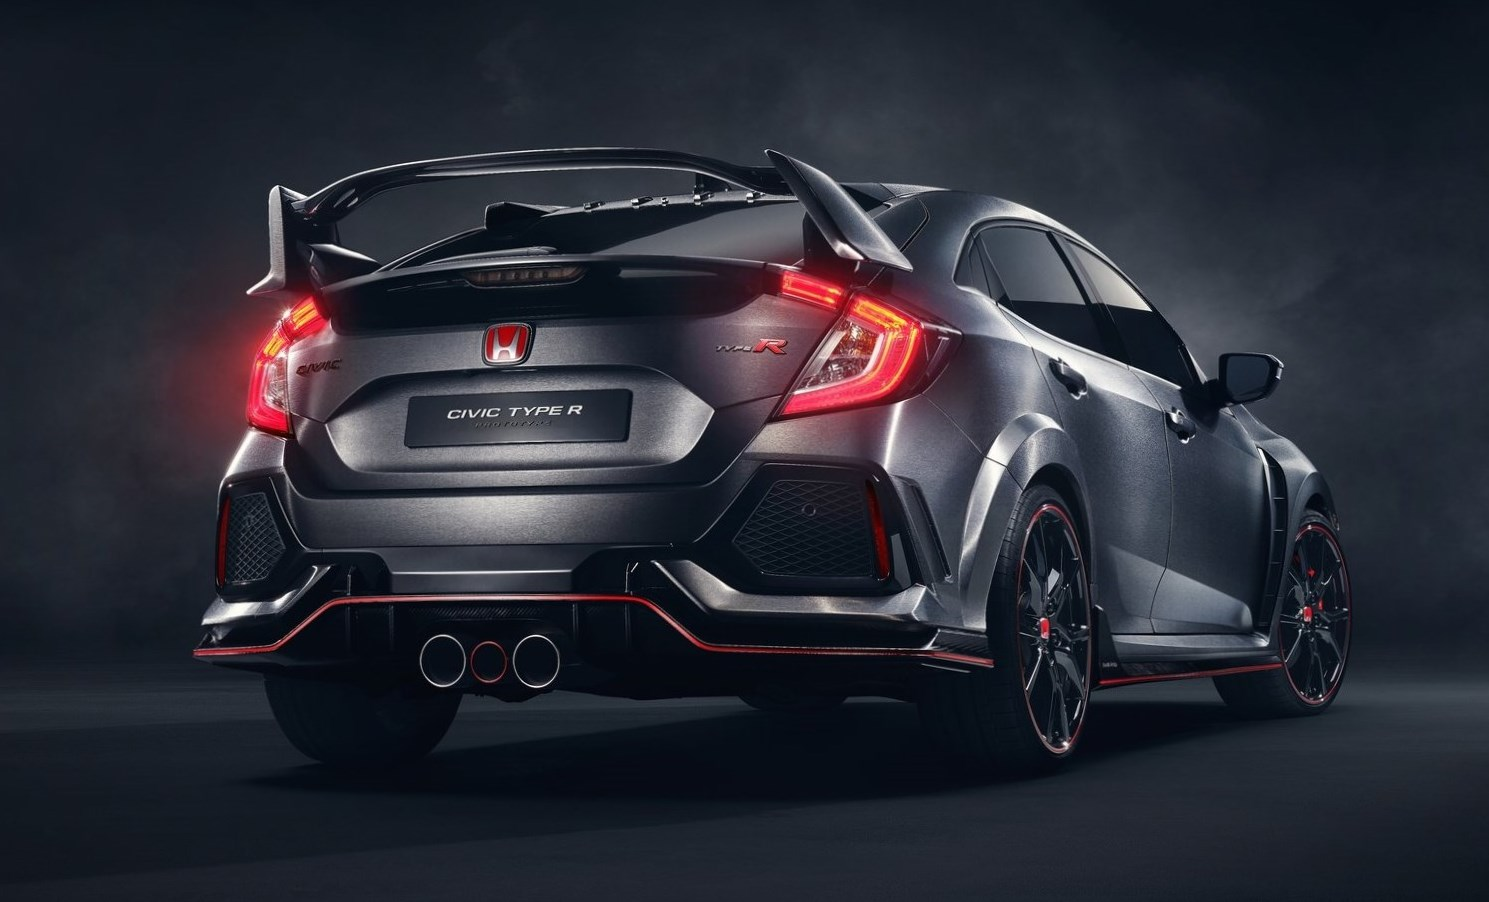 Este es el espectacular Honda Civic Type-R 2017 (+300 CV) | Automotiva